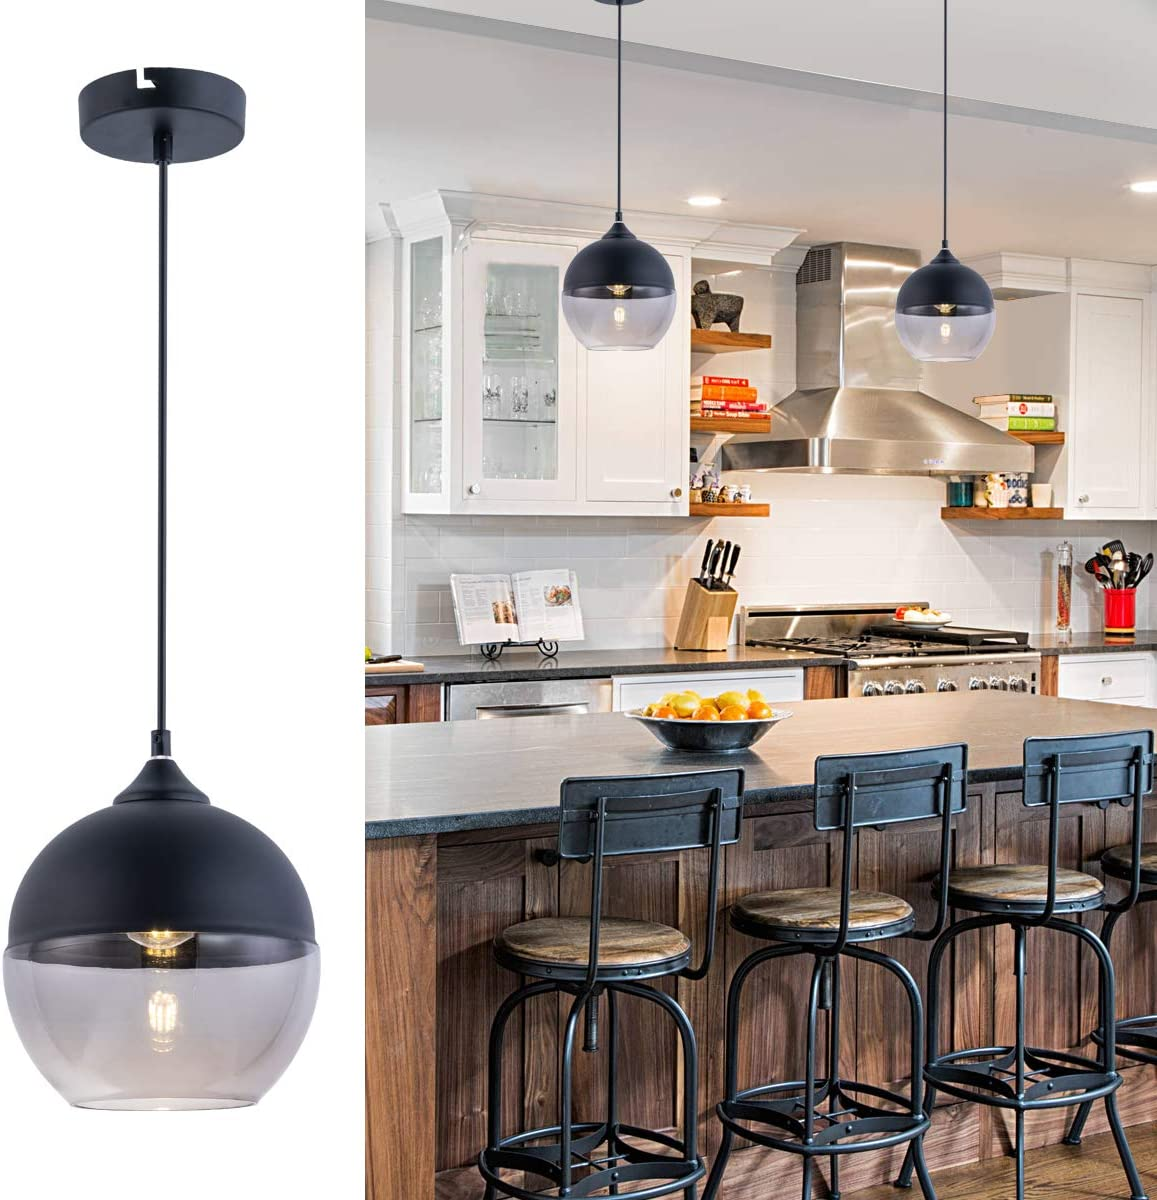 Bewamf Modern Mini Pendant Lighting with Matte Black and Grey Glass Shade Adjustable Edison Loft Farmhouse Hanging Light Fixture for Kitchen Island Restaurants Hotels Dining Room